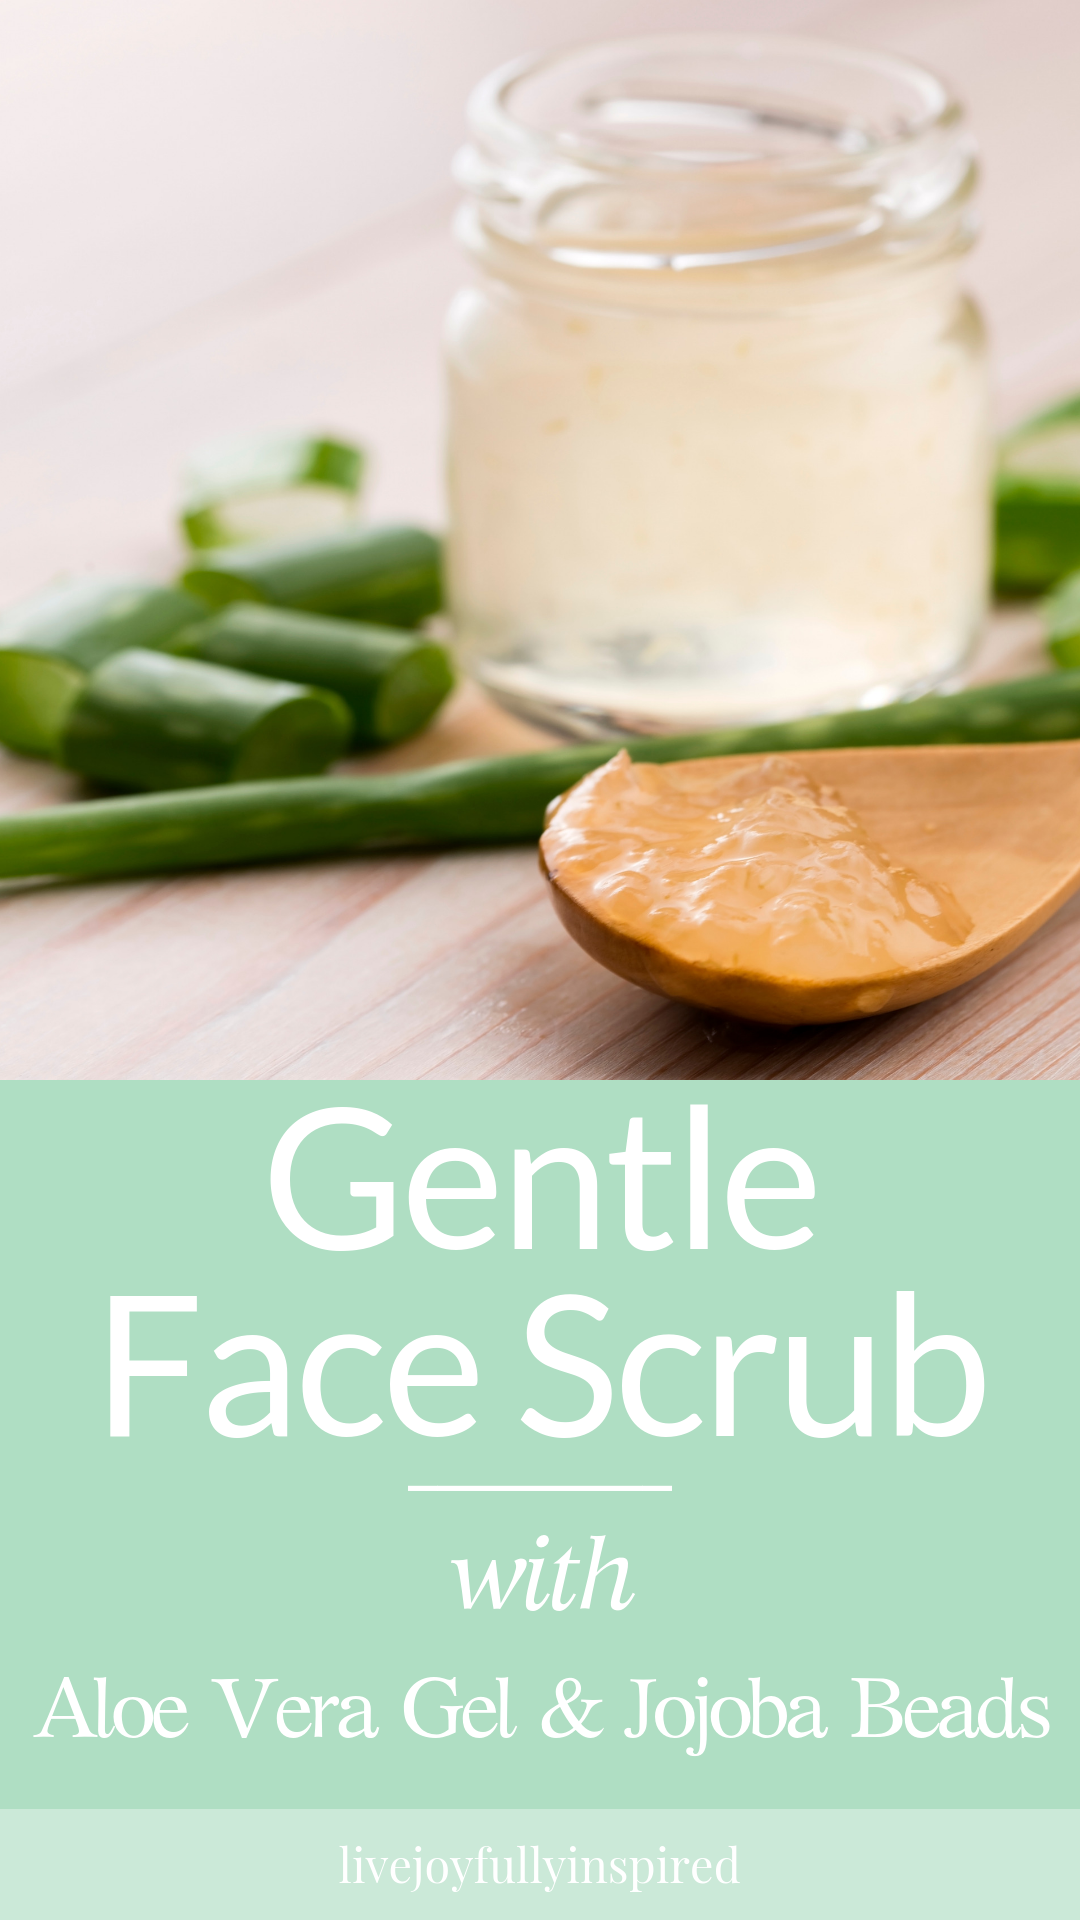 Have you been looking for an easy DIY face scrub made for sensitive skin?  Then look no further because I've got you covered. If you have sensitive skin and need an every day gentle facial scrub with natural ingredients, then you're going to love this recipe. It's super easy to make and leaves your skin feeling soft and clean. #gentlefacescrub #diybeuty #aloevera